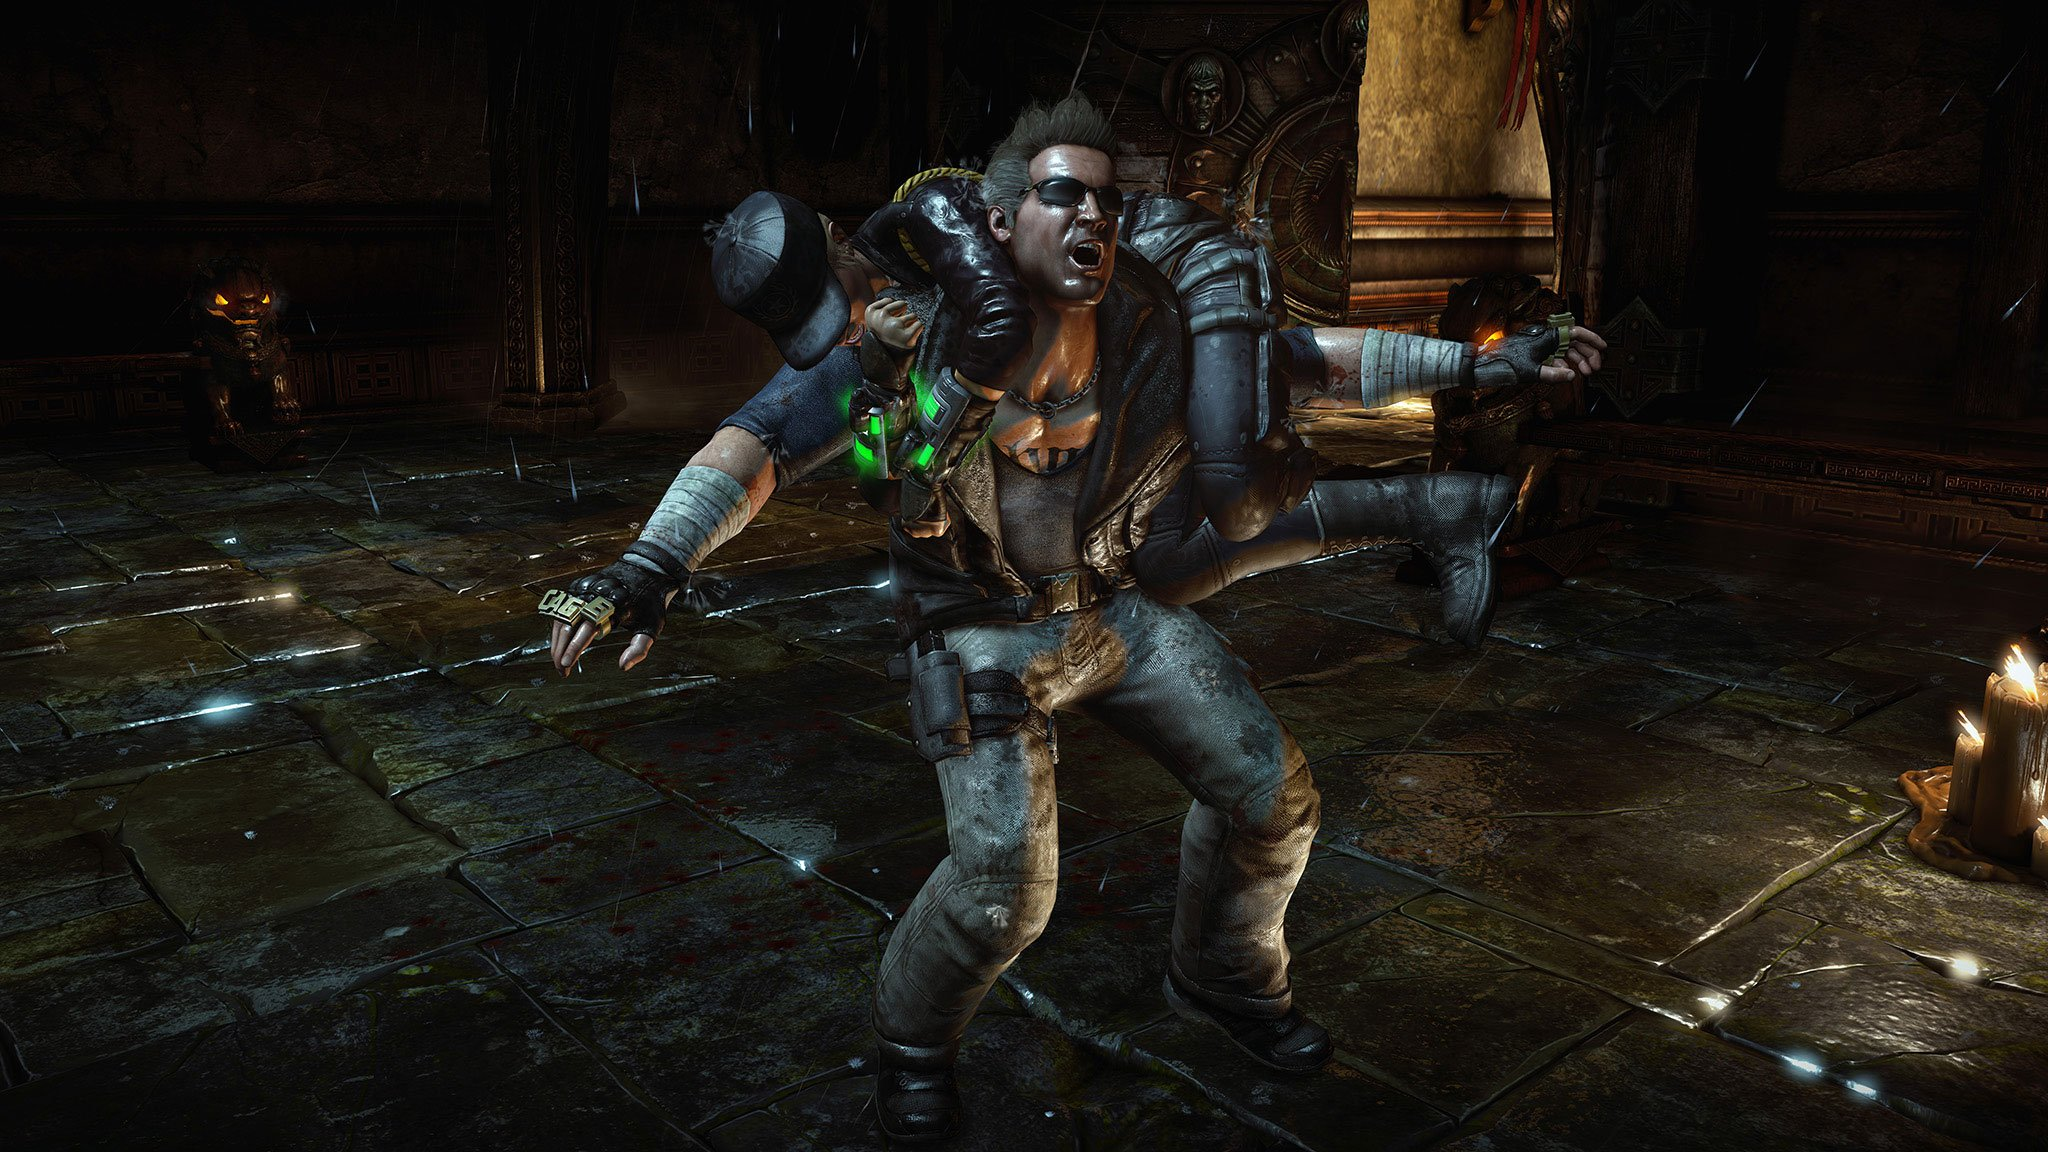 Mortal Kombat X Johnny Cage And Sonya Blade Trailer Sneaks In A Third Character Reveal #32634